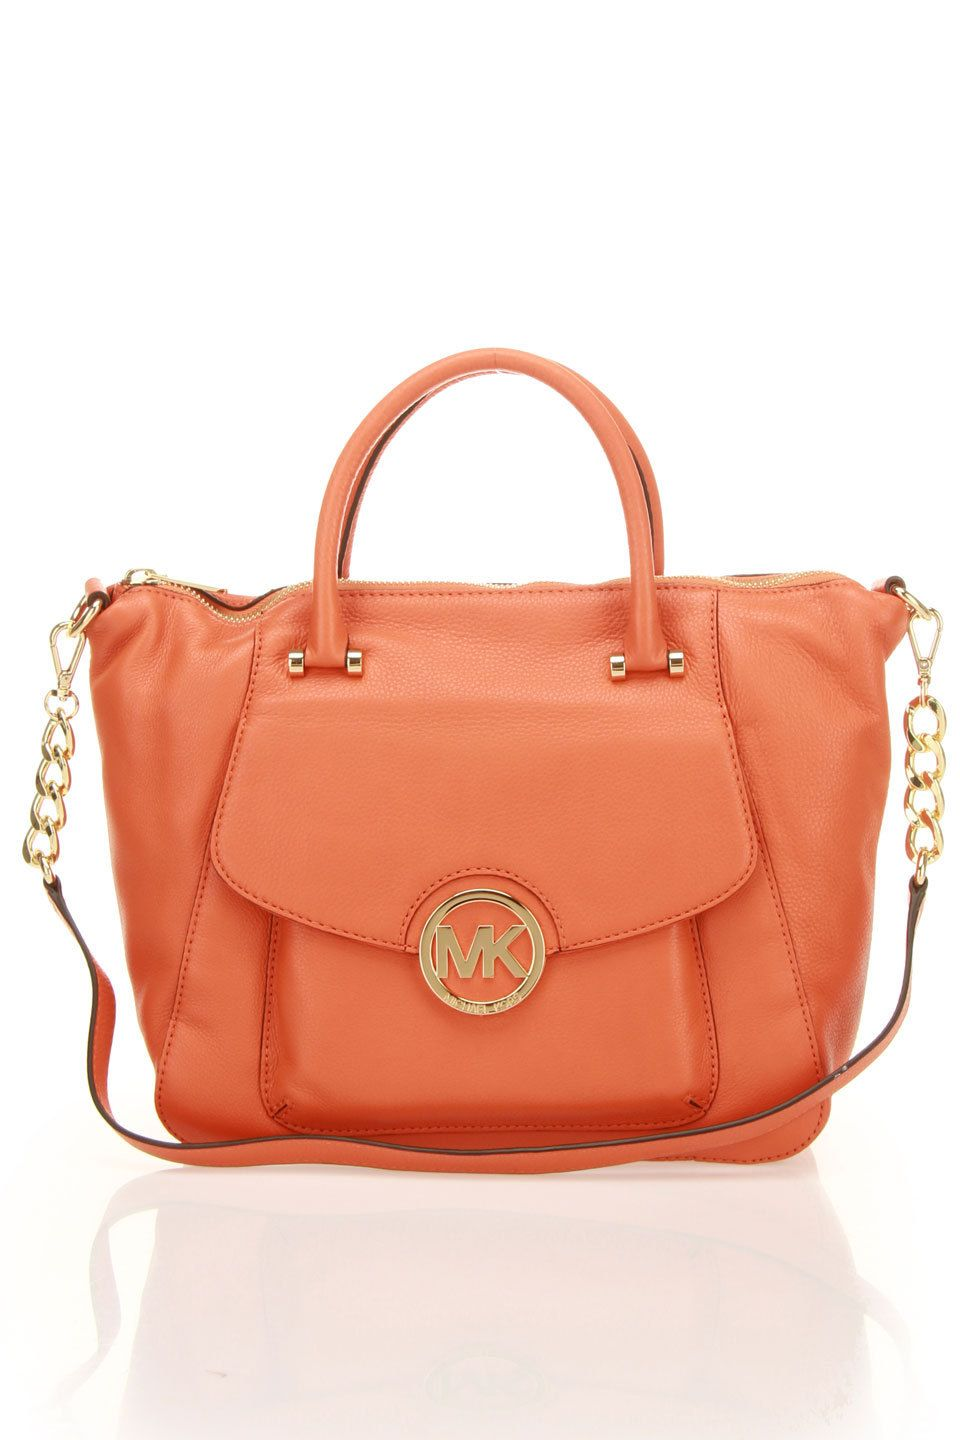 81cc4acc01e6 MK Fulton Large Shoulder Bag In Tangerine  229.99 Michael Kors Handbags  Outlet